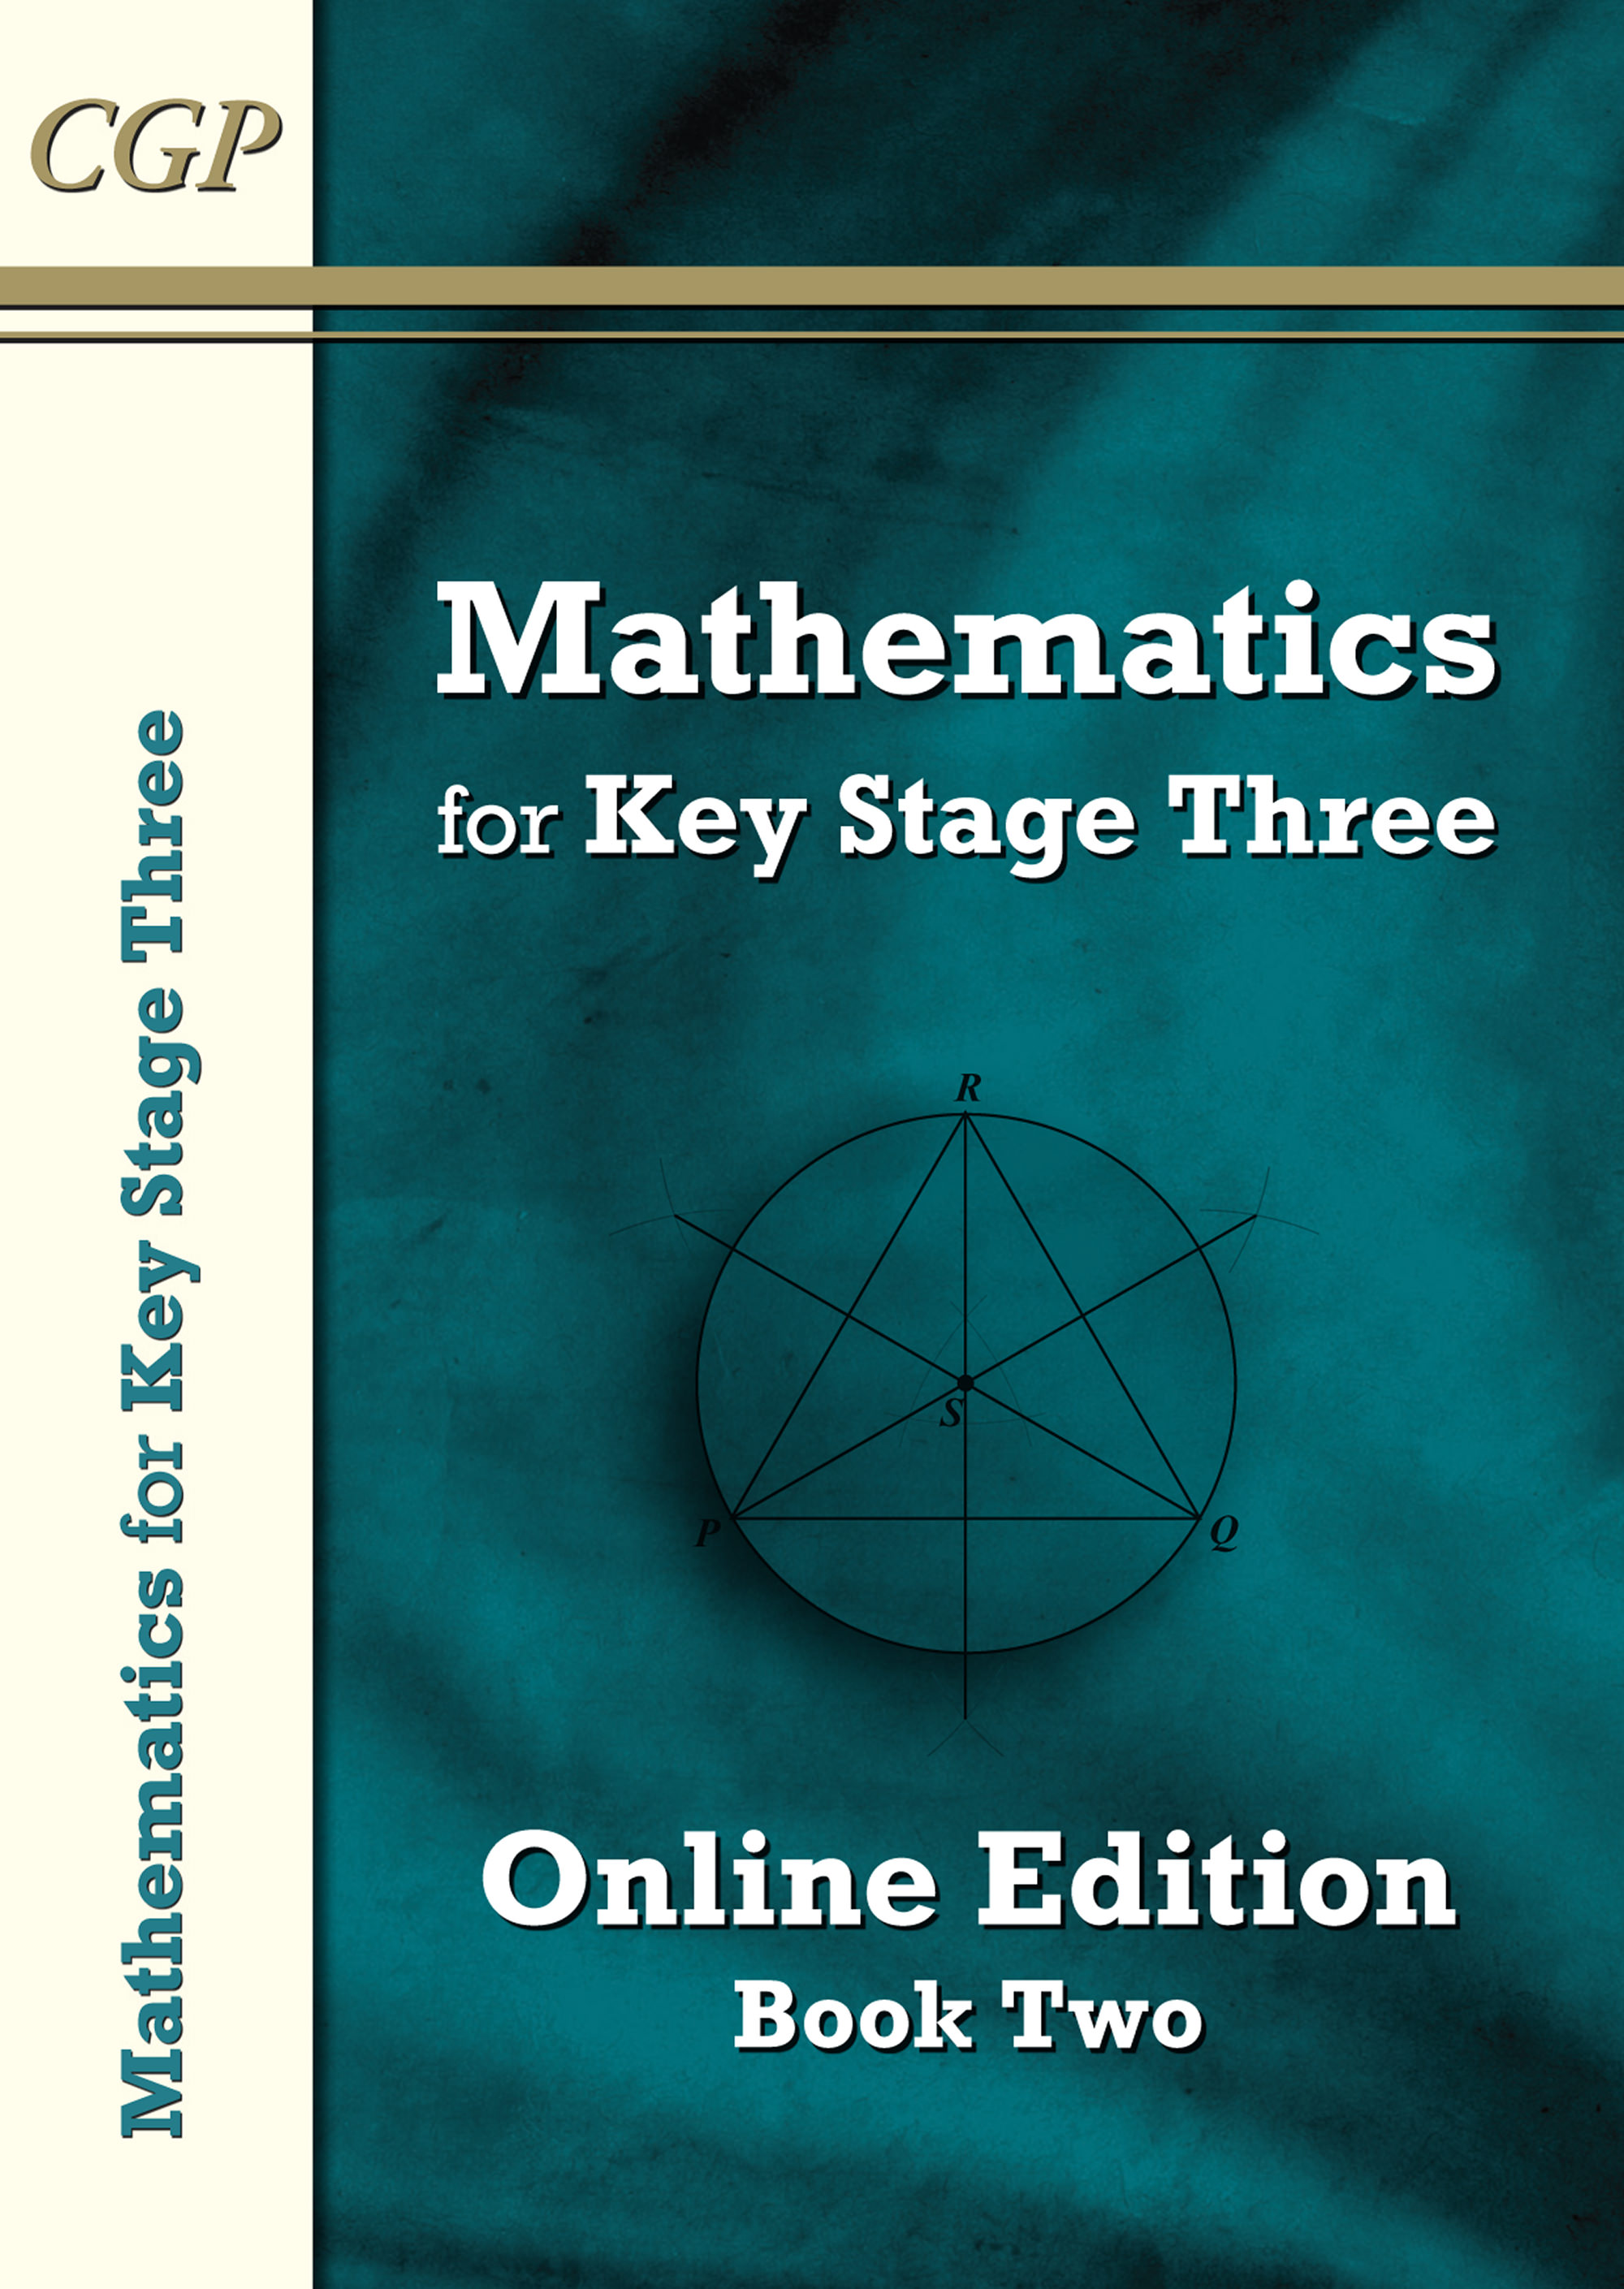 M2NN31G - KS3 Maths Textbook 2: Student Online Edition (without answers)